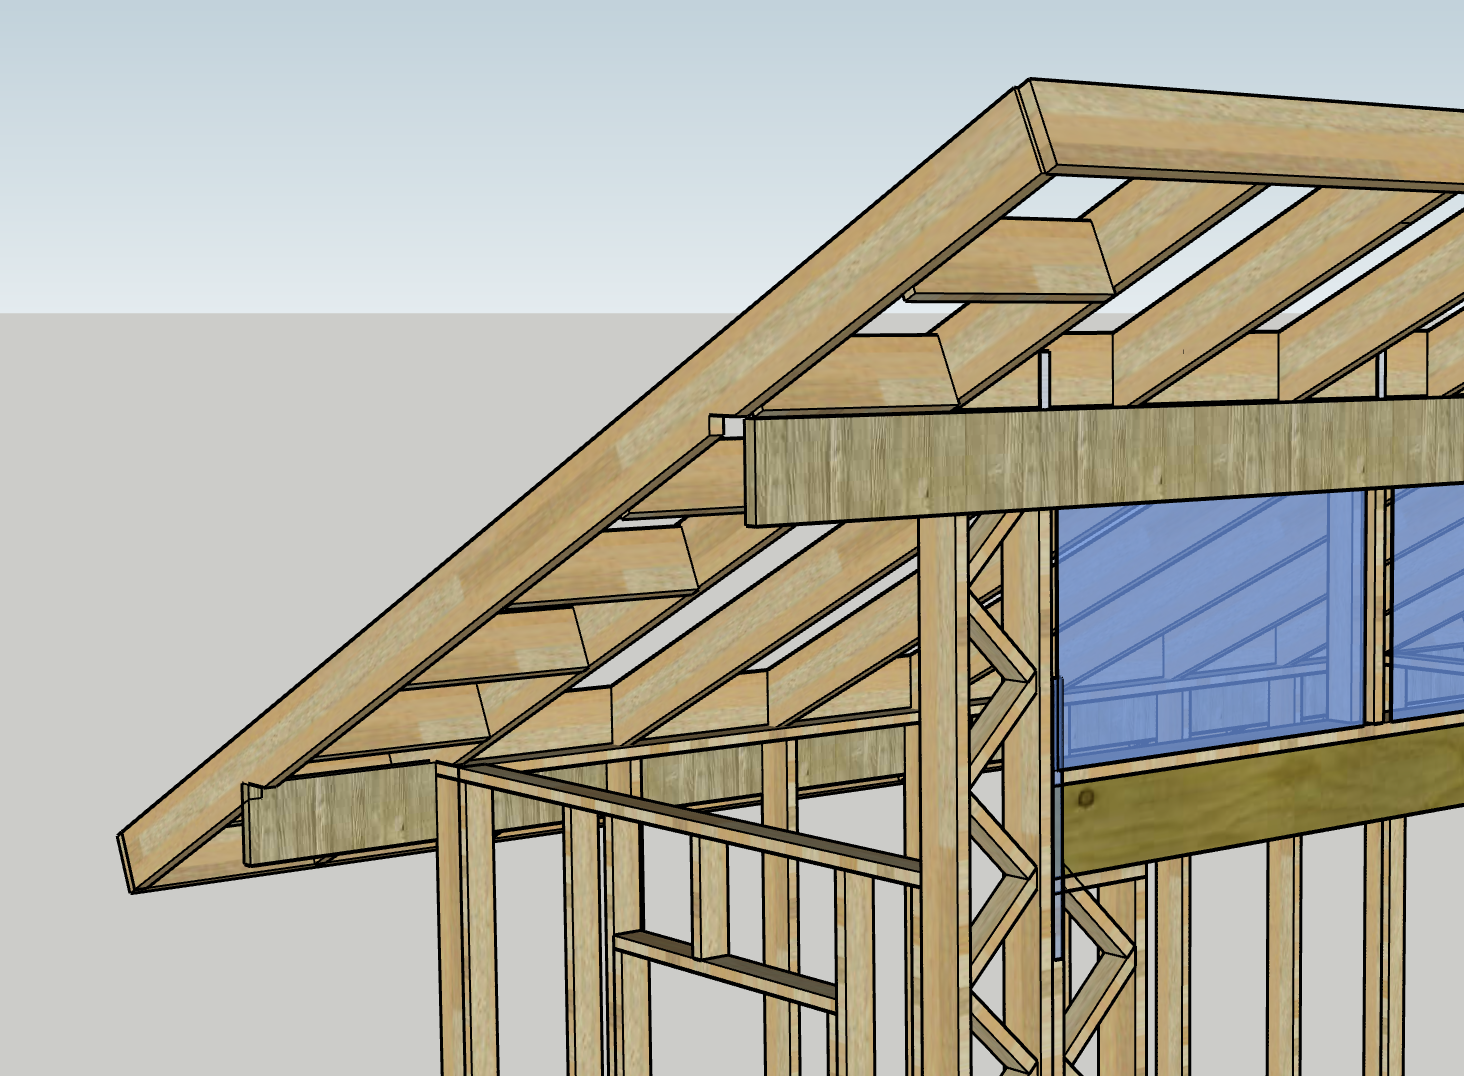 Shed / workshop framing design--is it too ambitious?-screen-shot-2020-04-26-12.56.47-pm.png